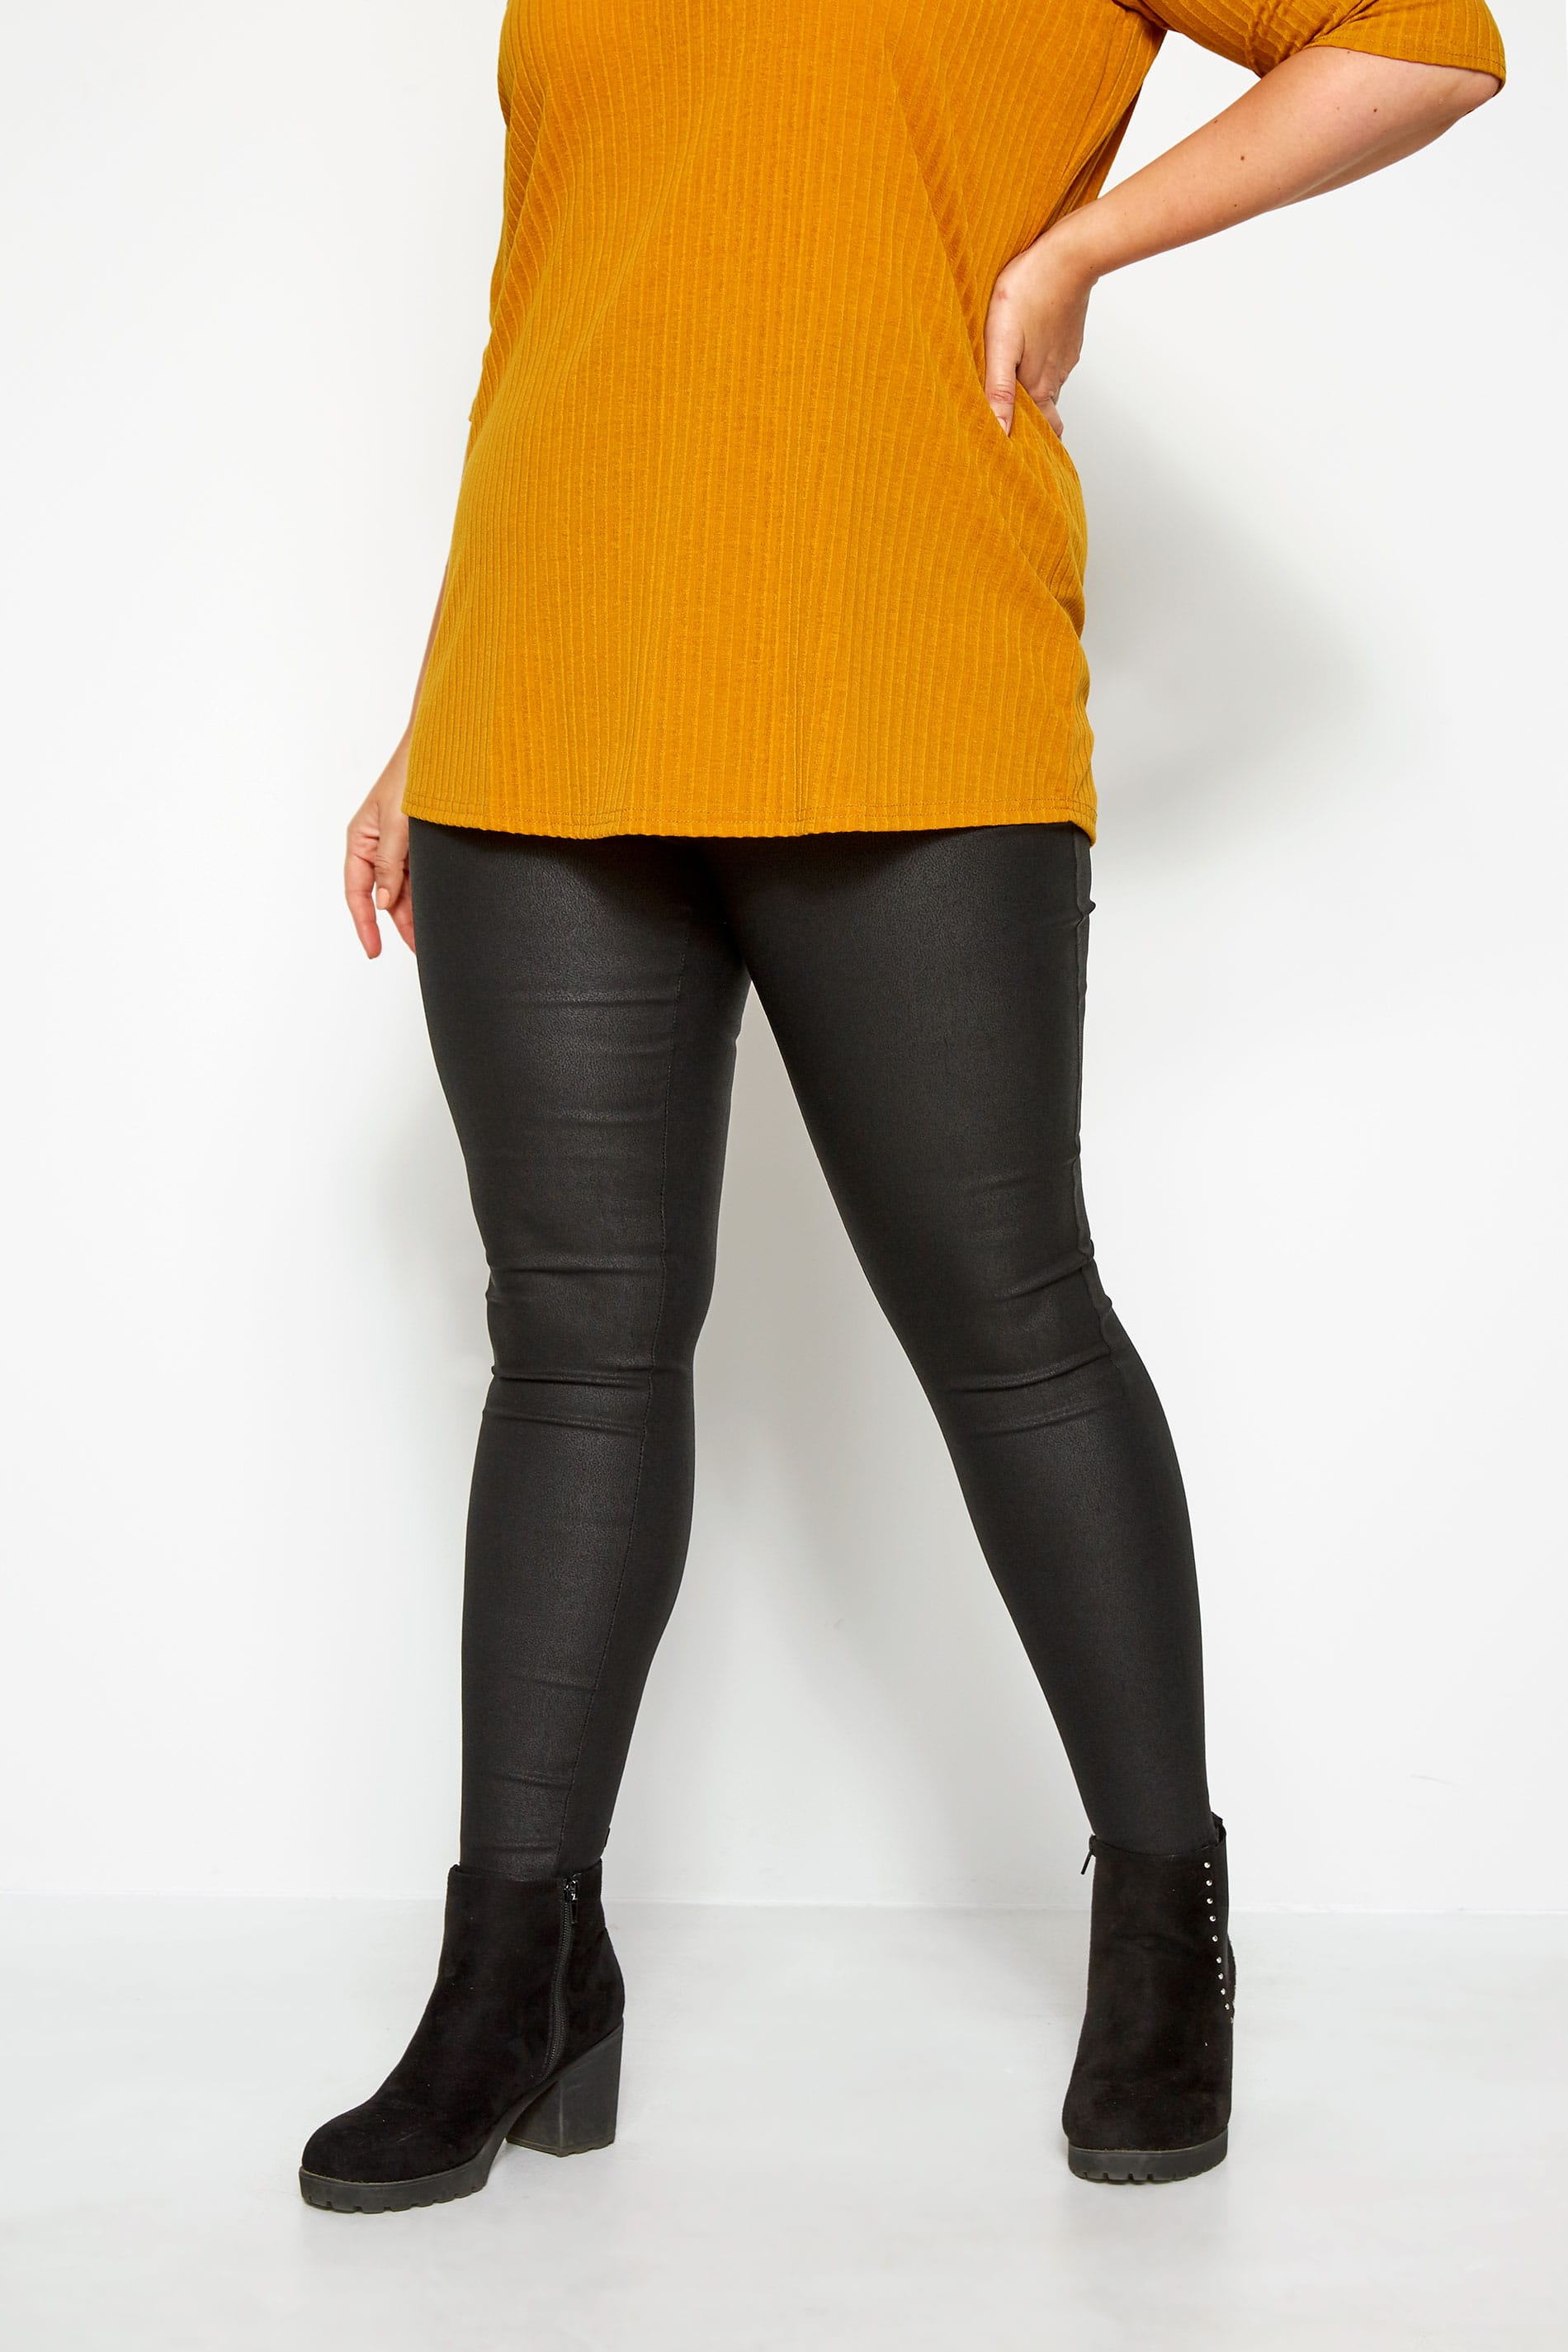 Black Textured Coated Leggings